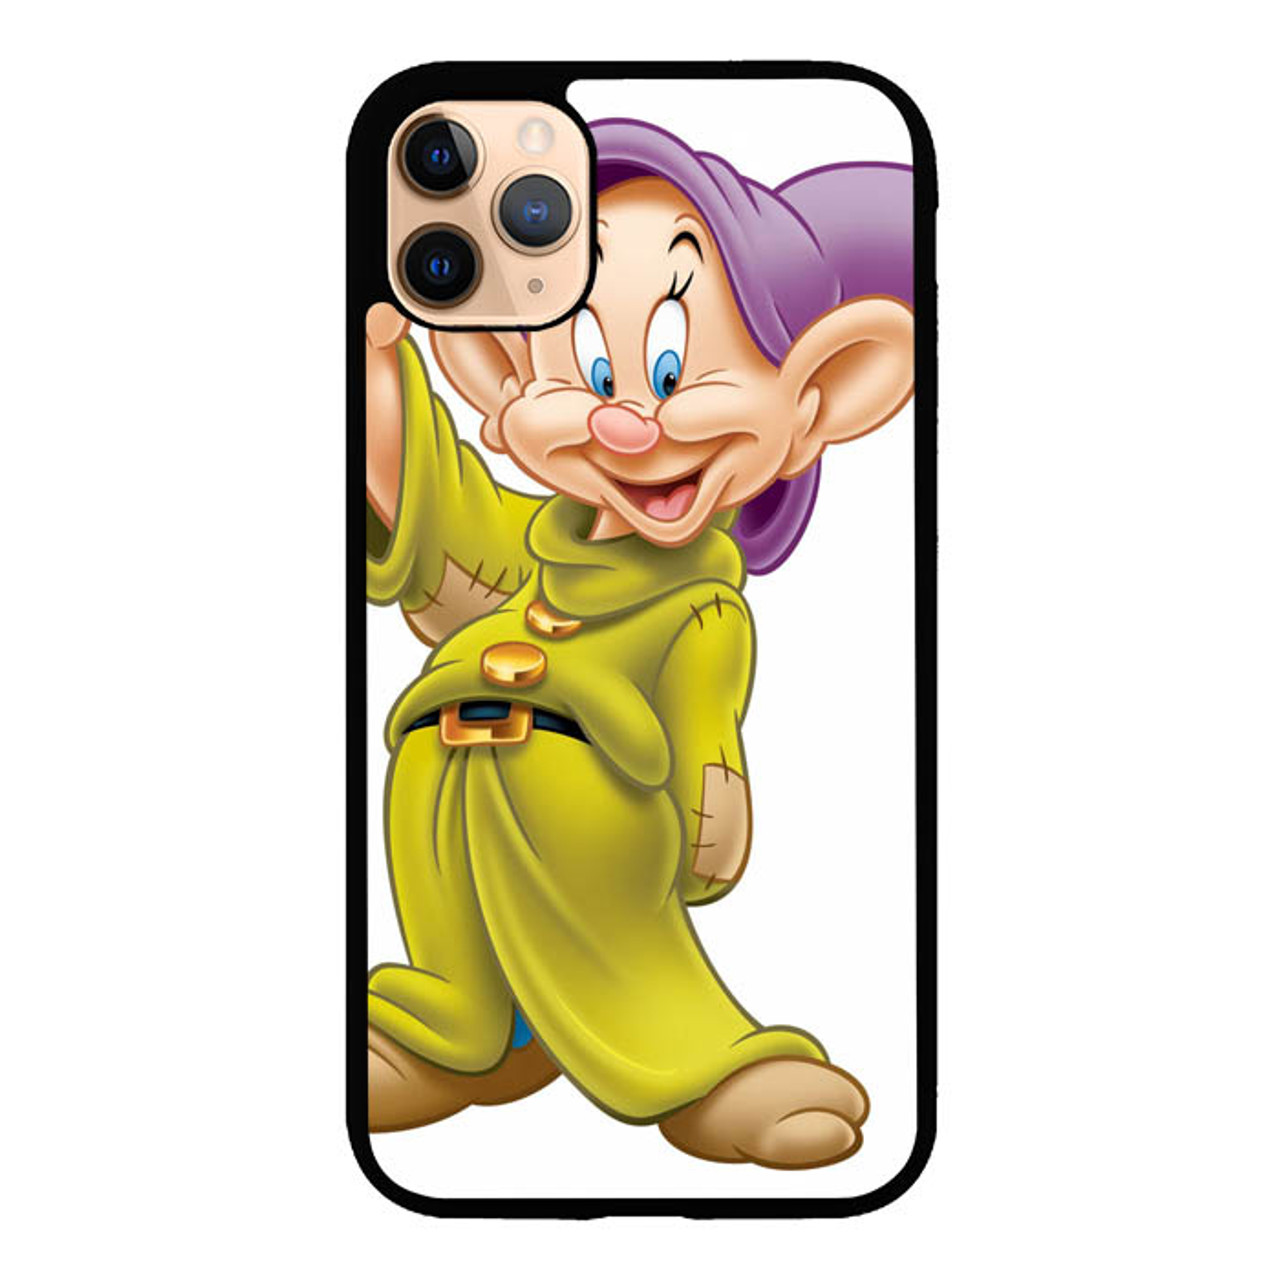 Dopey Snow White Seven Dwarfs Disney iphone case